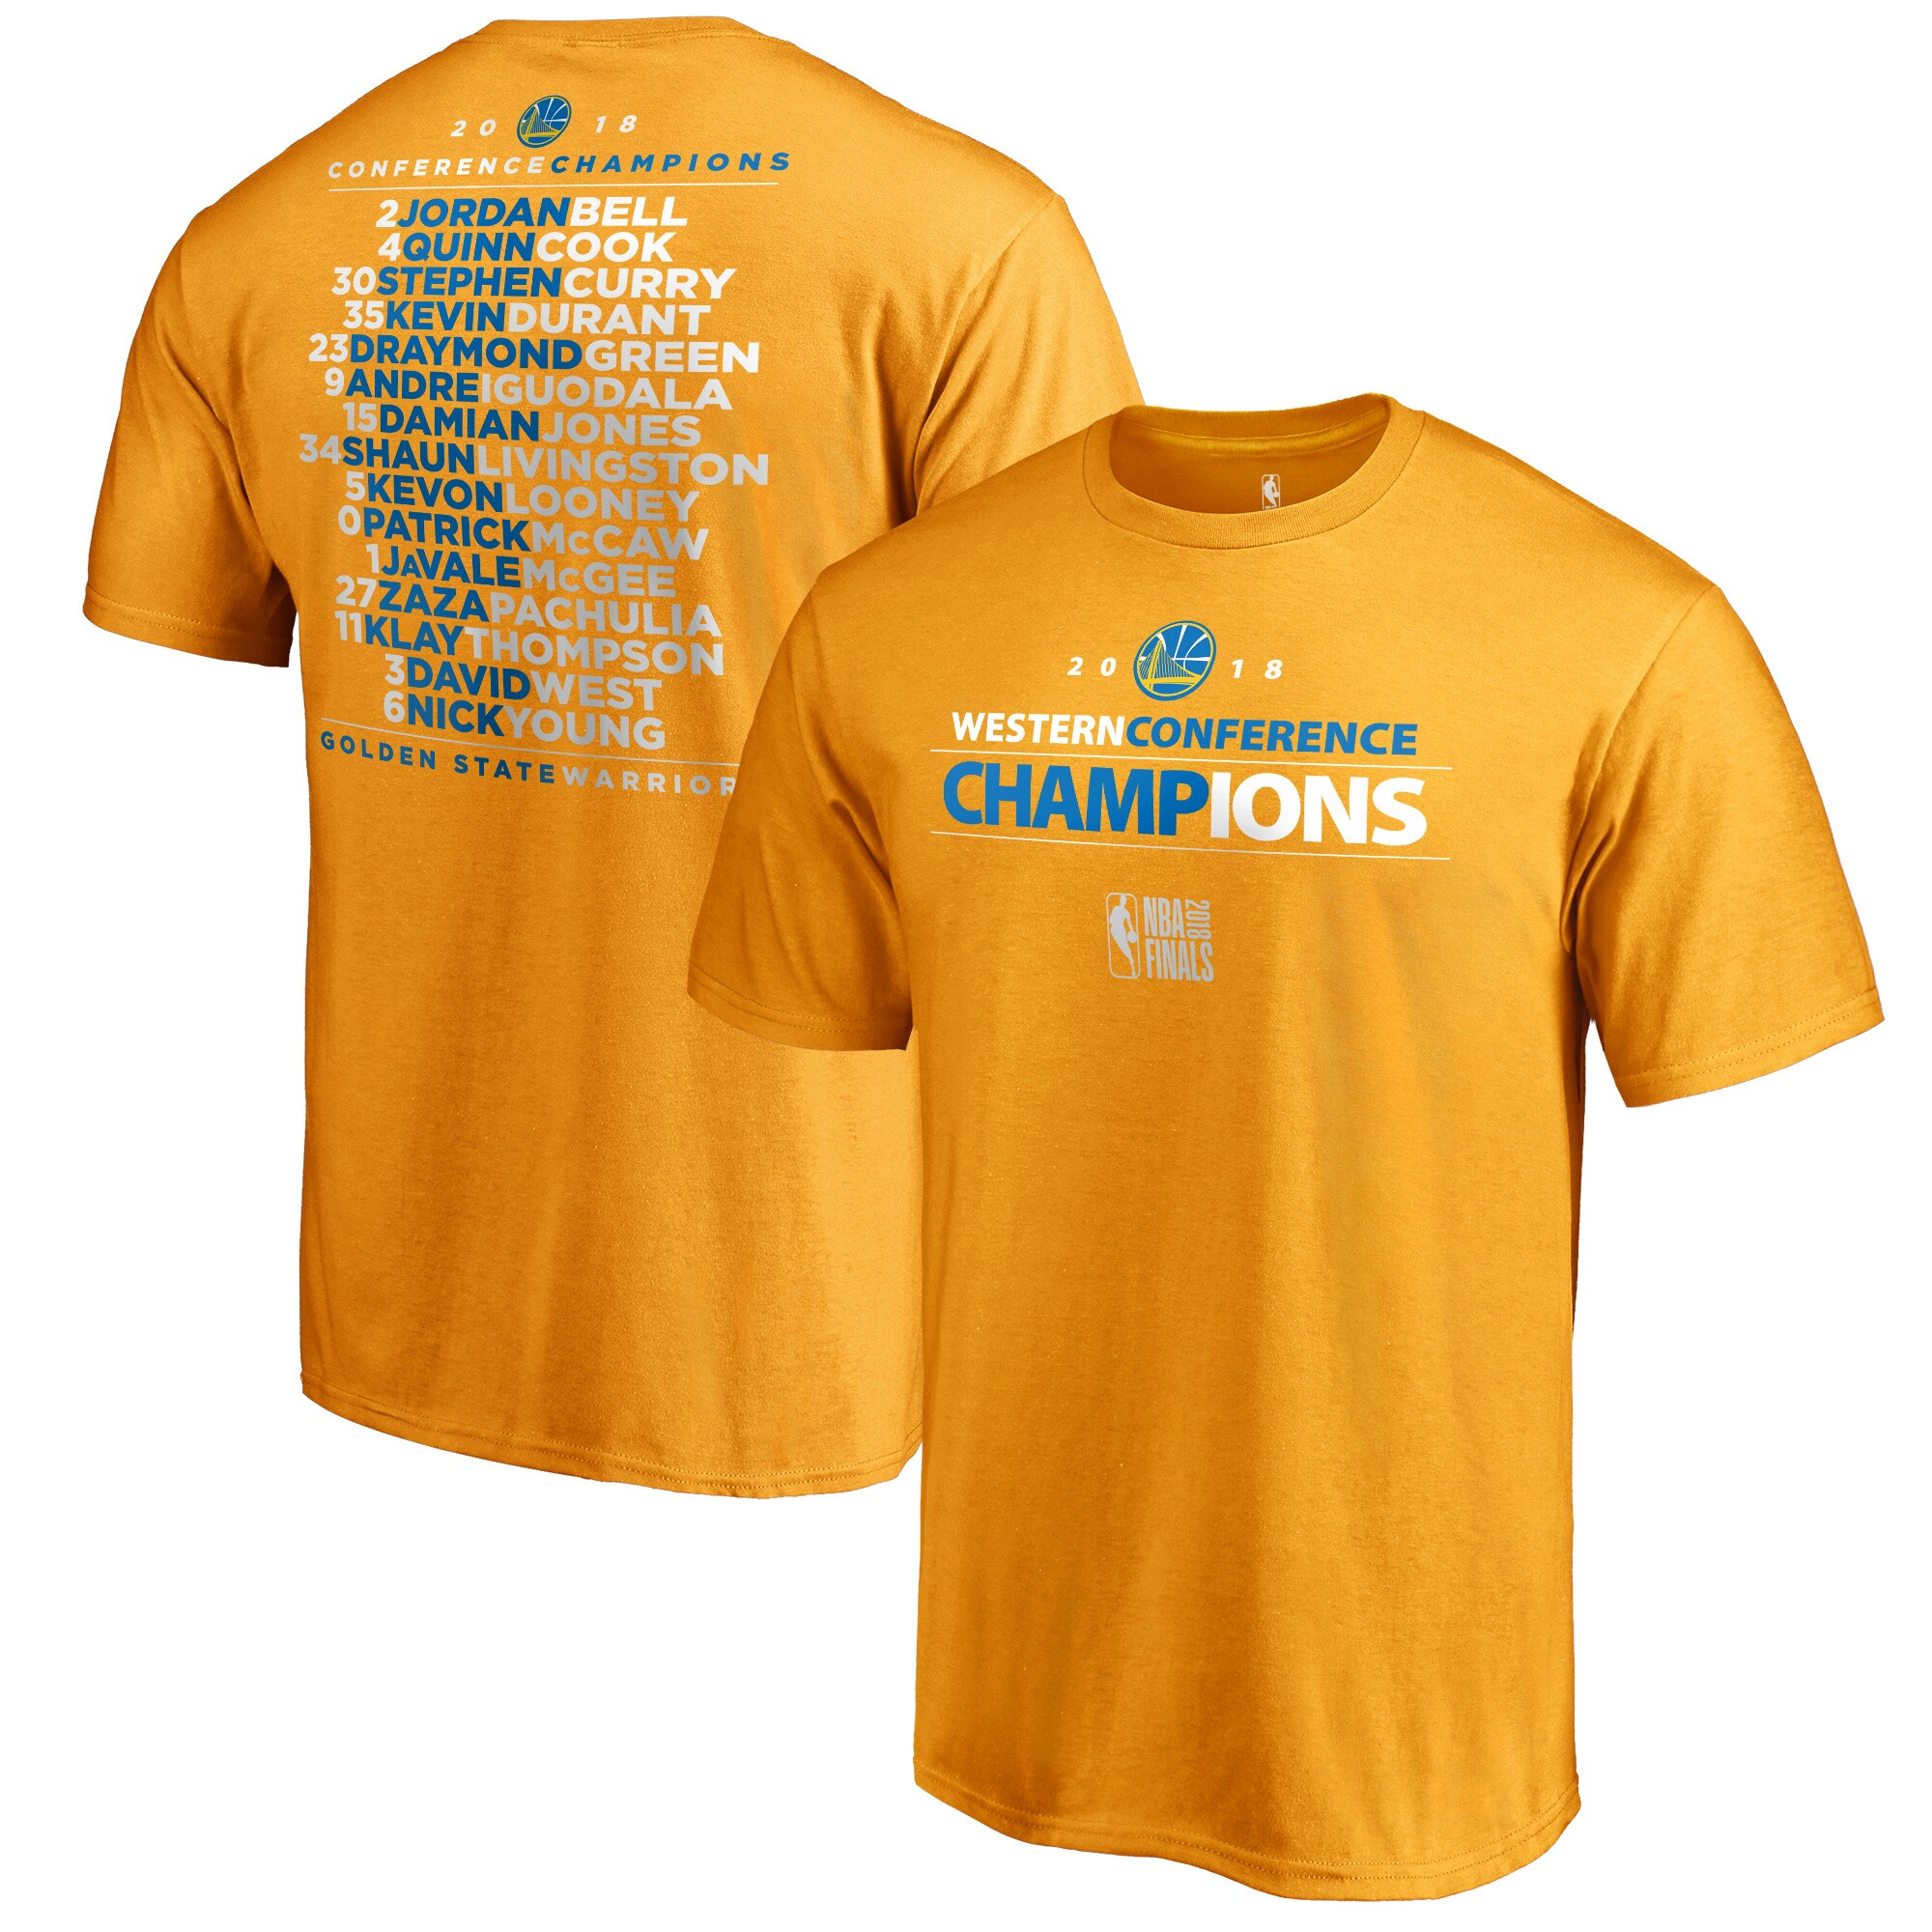 Golden State Warriors Fanatics Branded 2018 Western Conference Champions Backcourt Roster T-Shirt - Gold